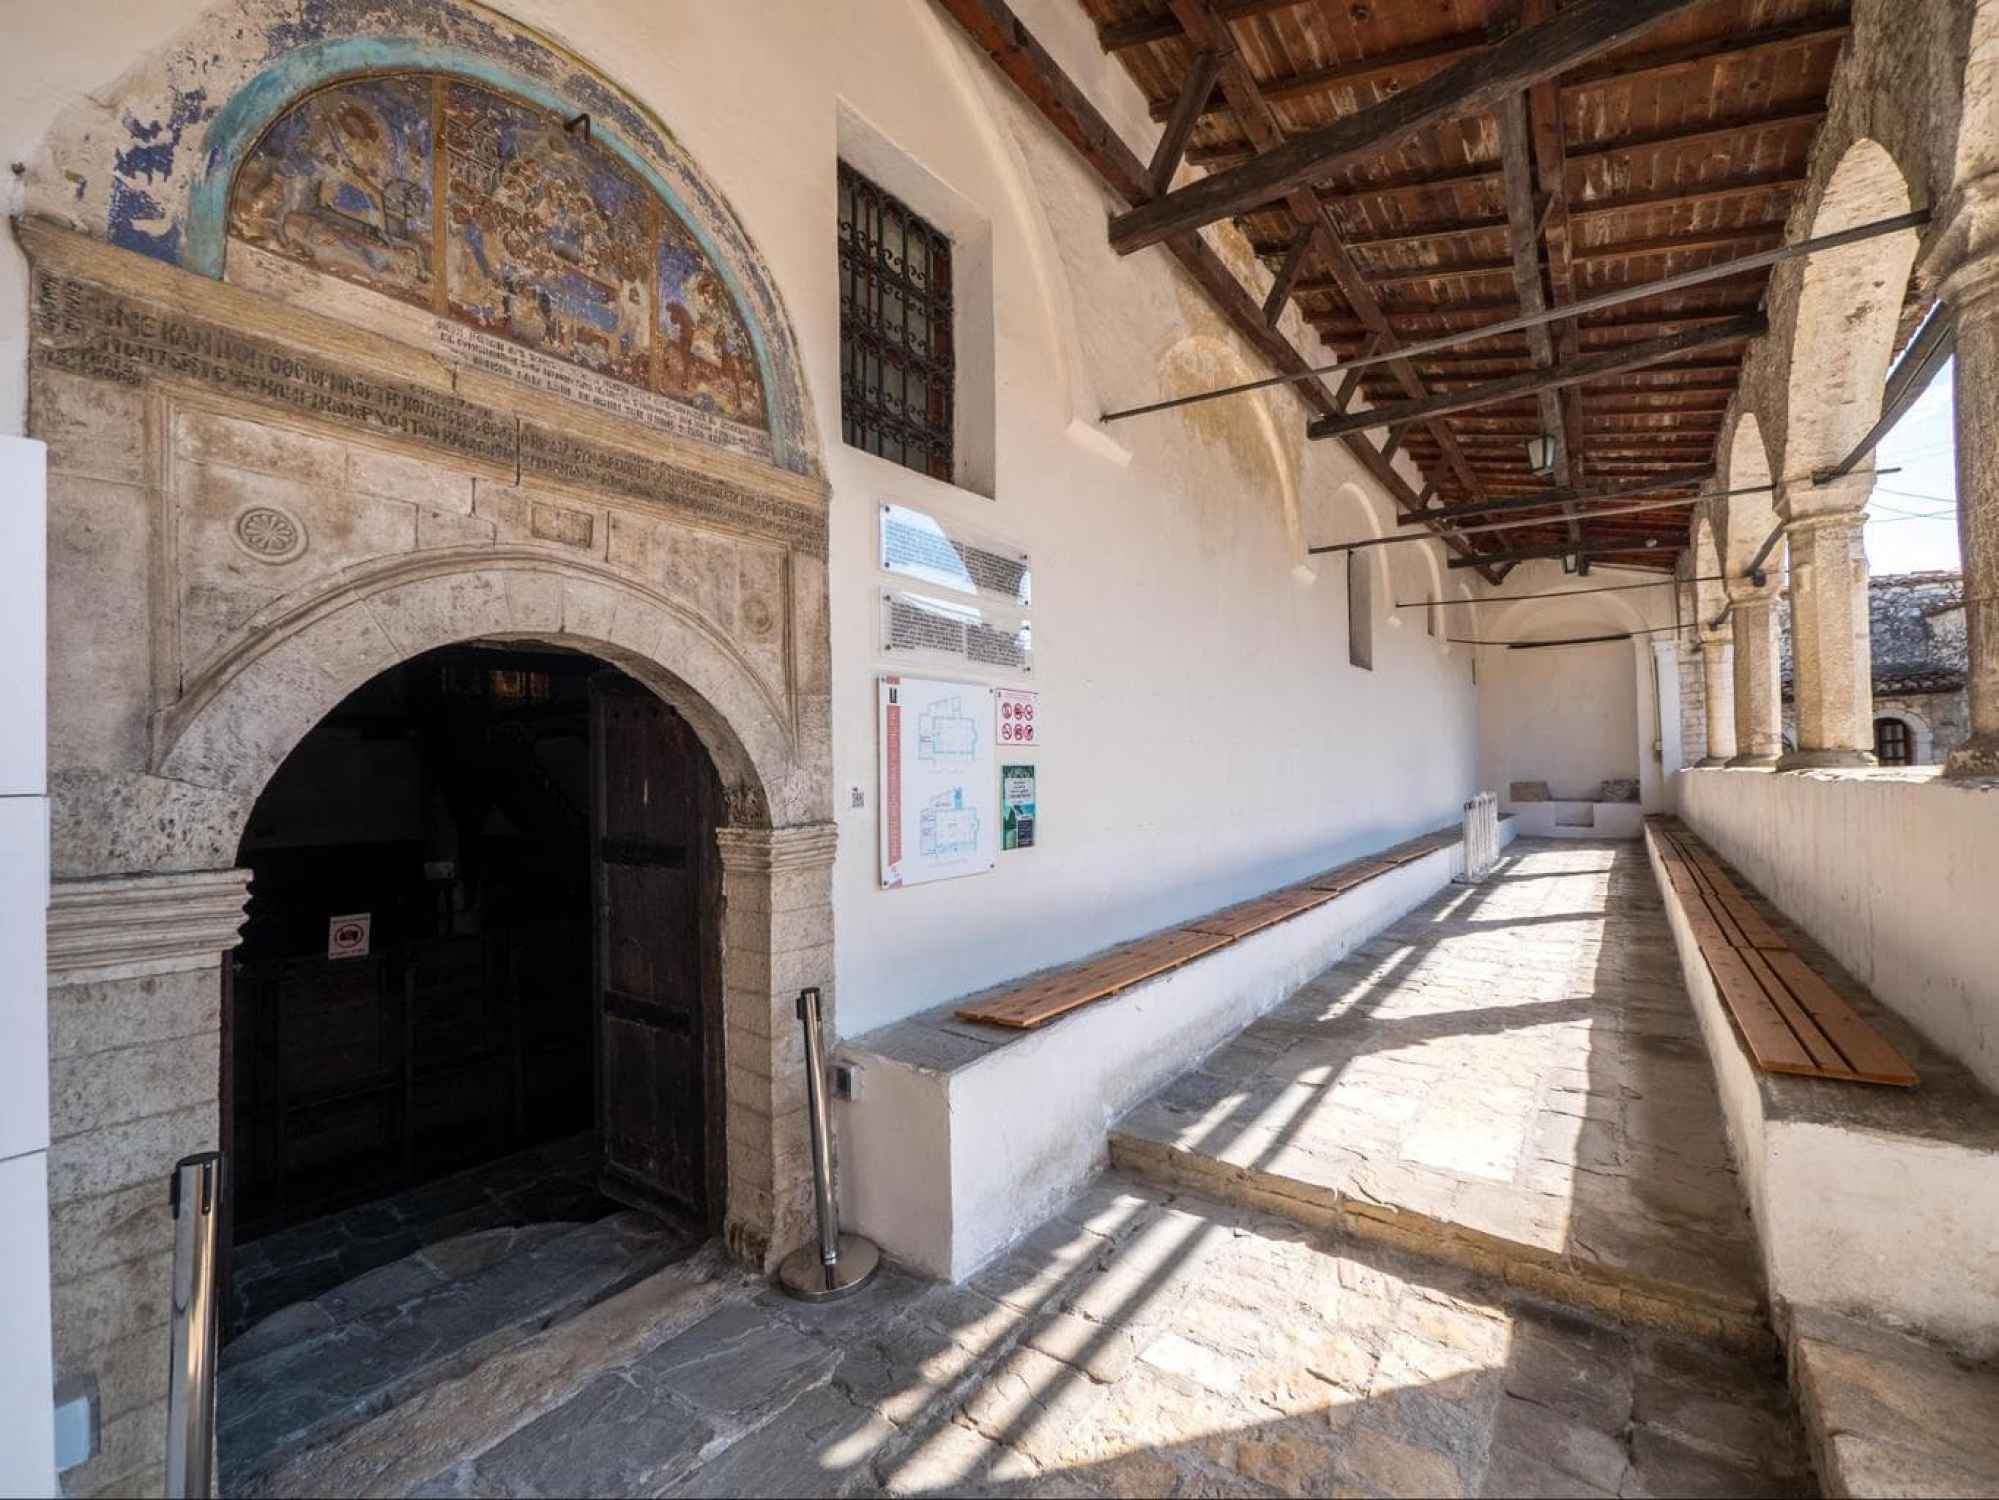 Entrance to the Cathedral of the Assumption of St. Mary in Berat